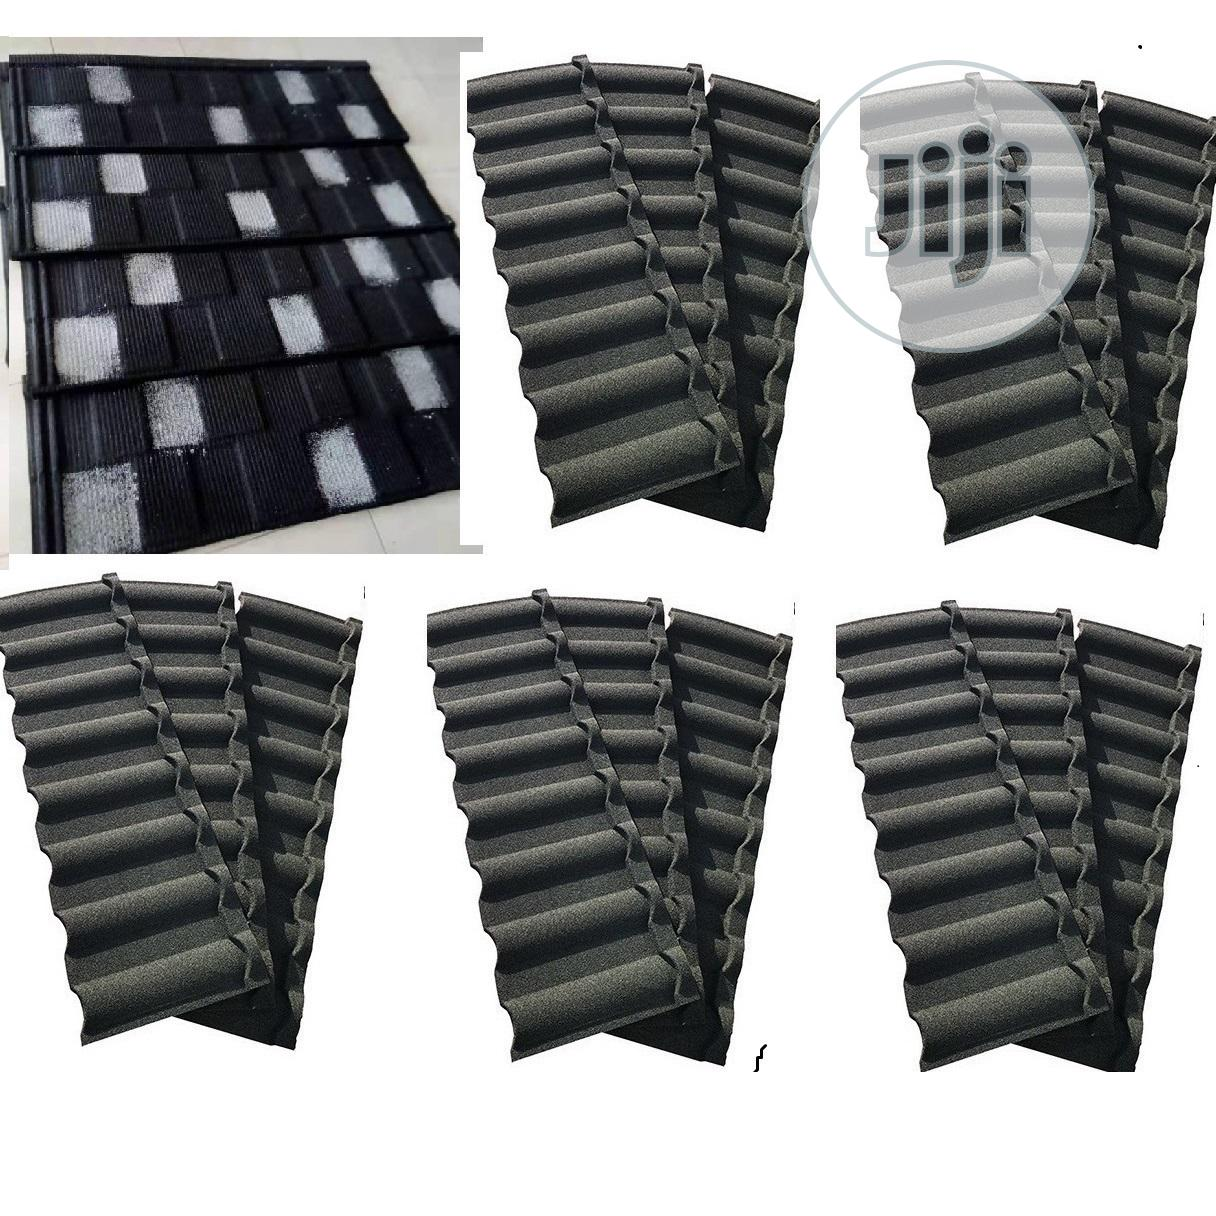 Roofing Sheet From Docherich Nigeria Limited, We Supply Stone Coated | Building Materials for sale in Ajah, Lagos State, Nigeria